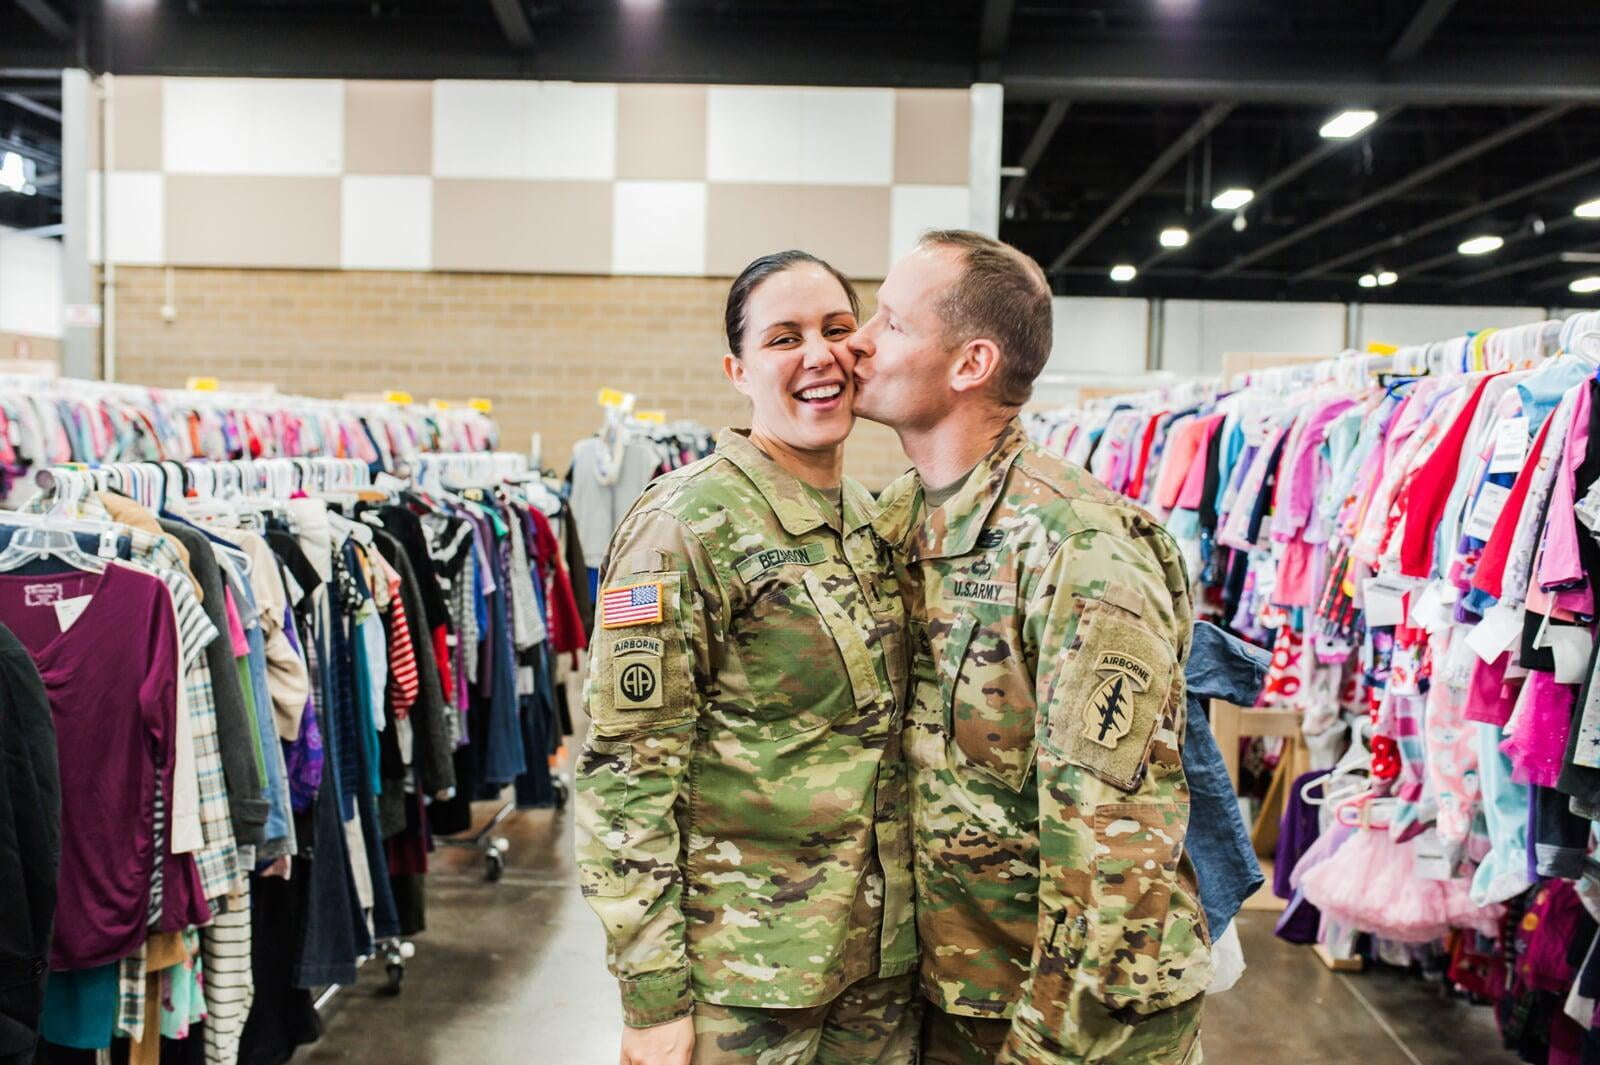 A military husband in camo kisses his military wife, also in camo, at the JBF sale in Tacoma Washington.